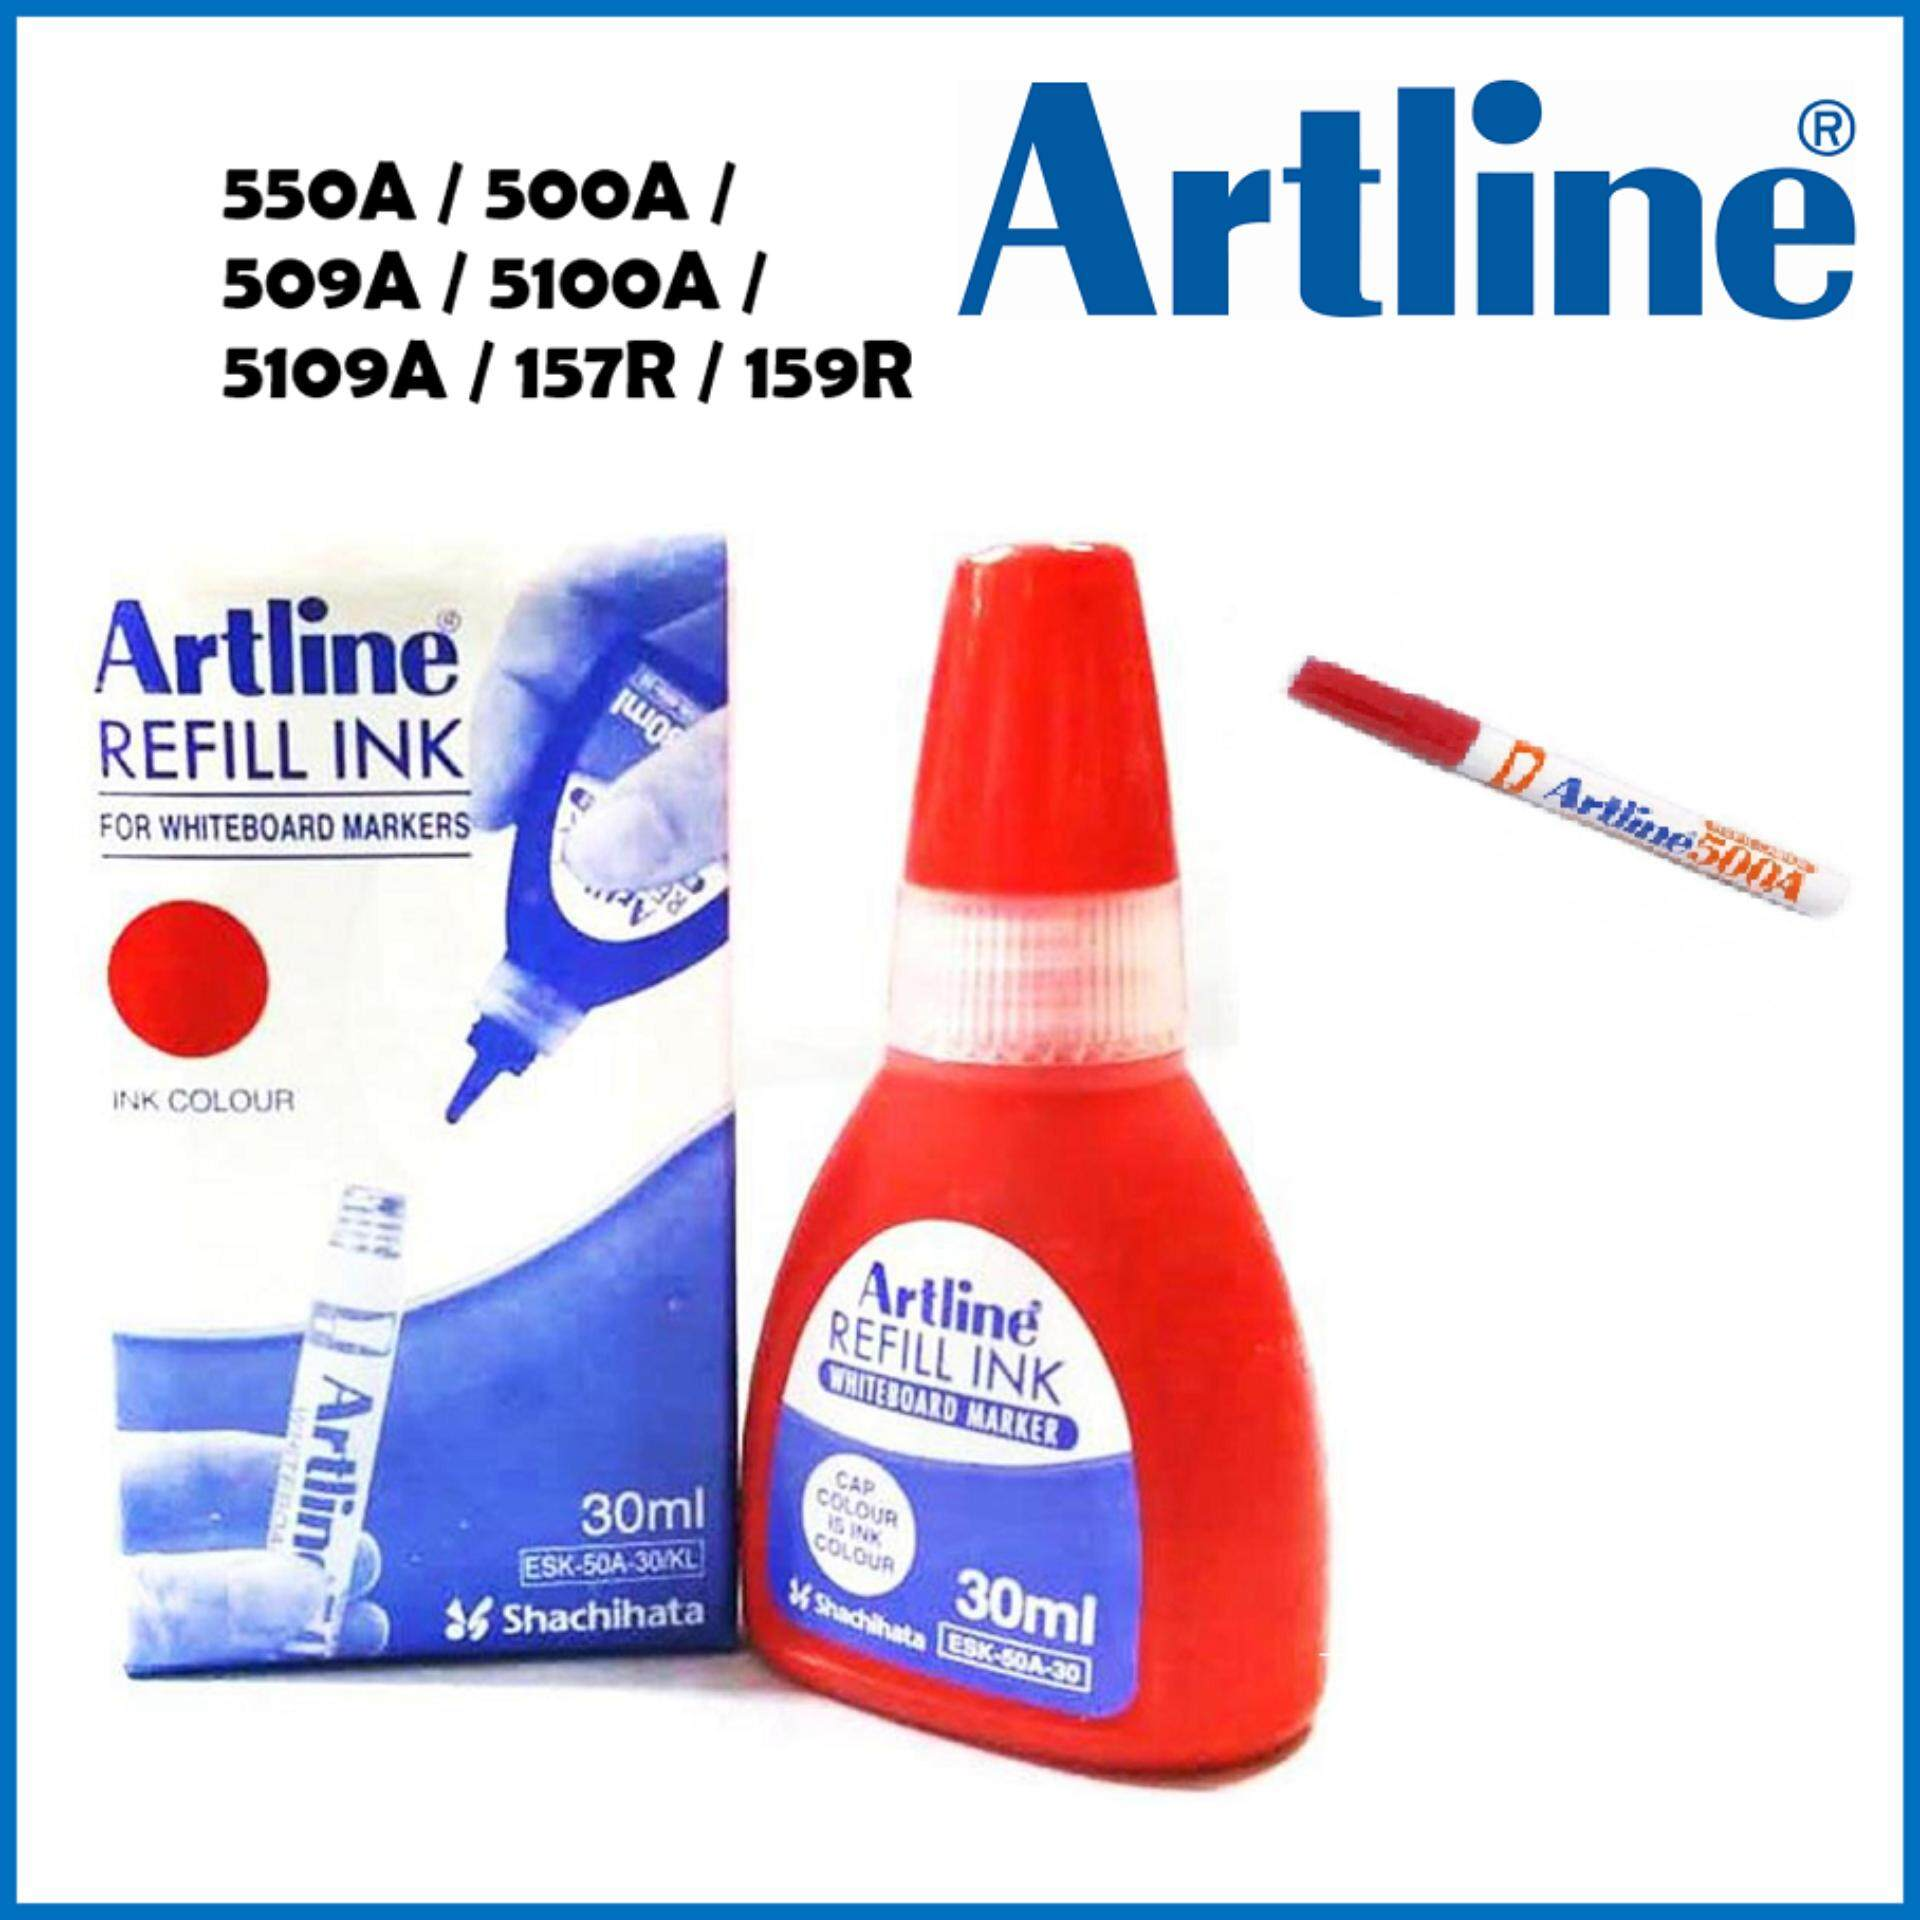 Artline Refill Ink 30ml For Whiteboard Marker Pen ( Red ) - Esk.50-A.30/kl By Titan Pallas Stationeries.